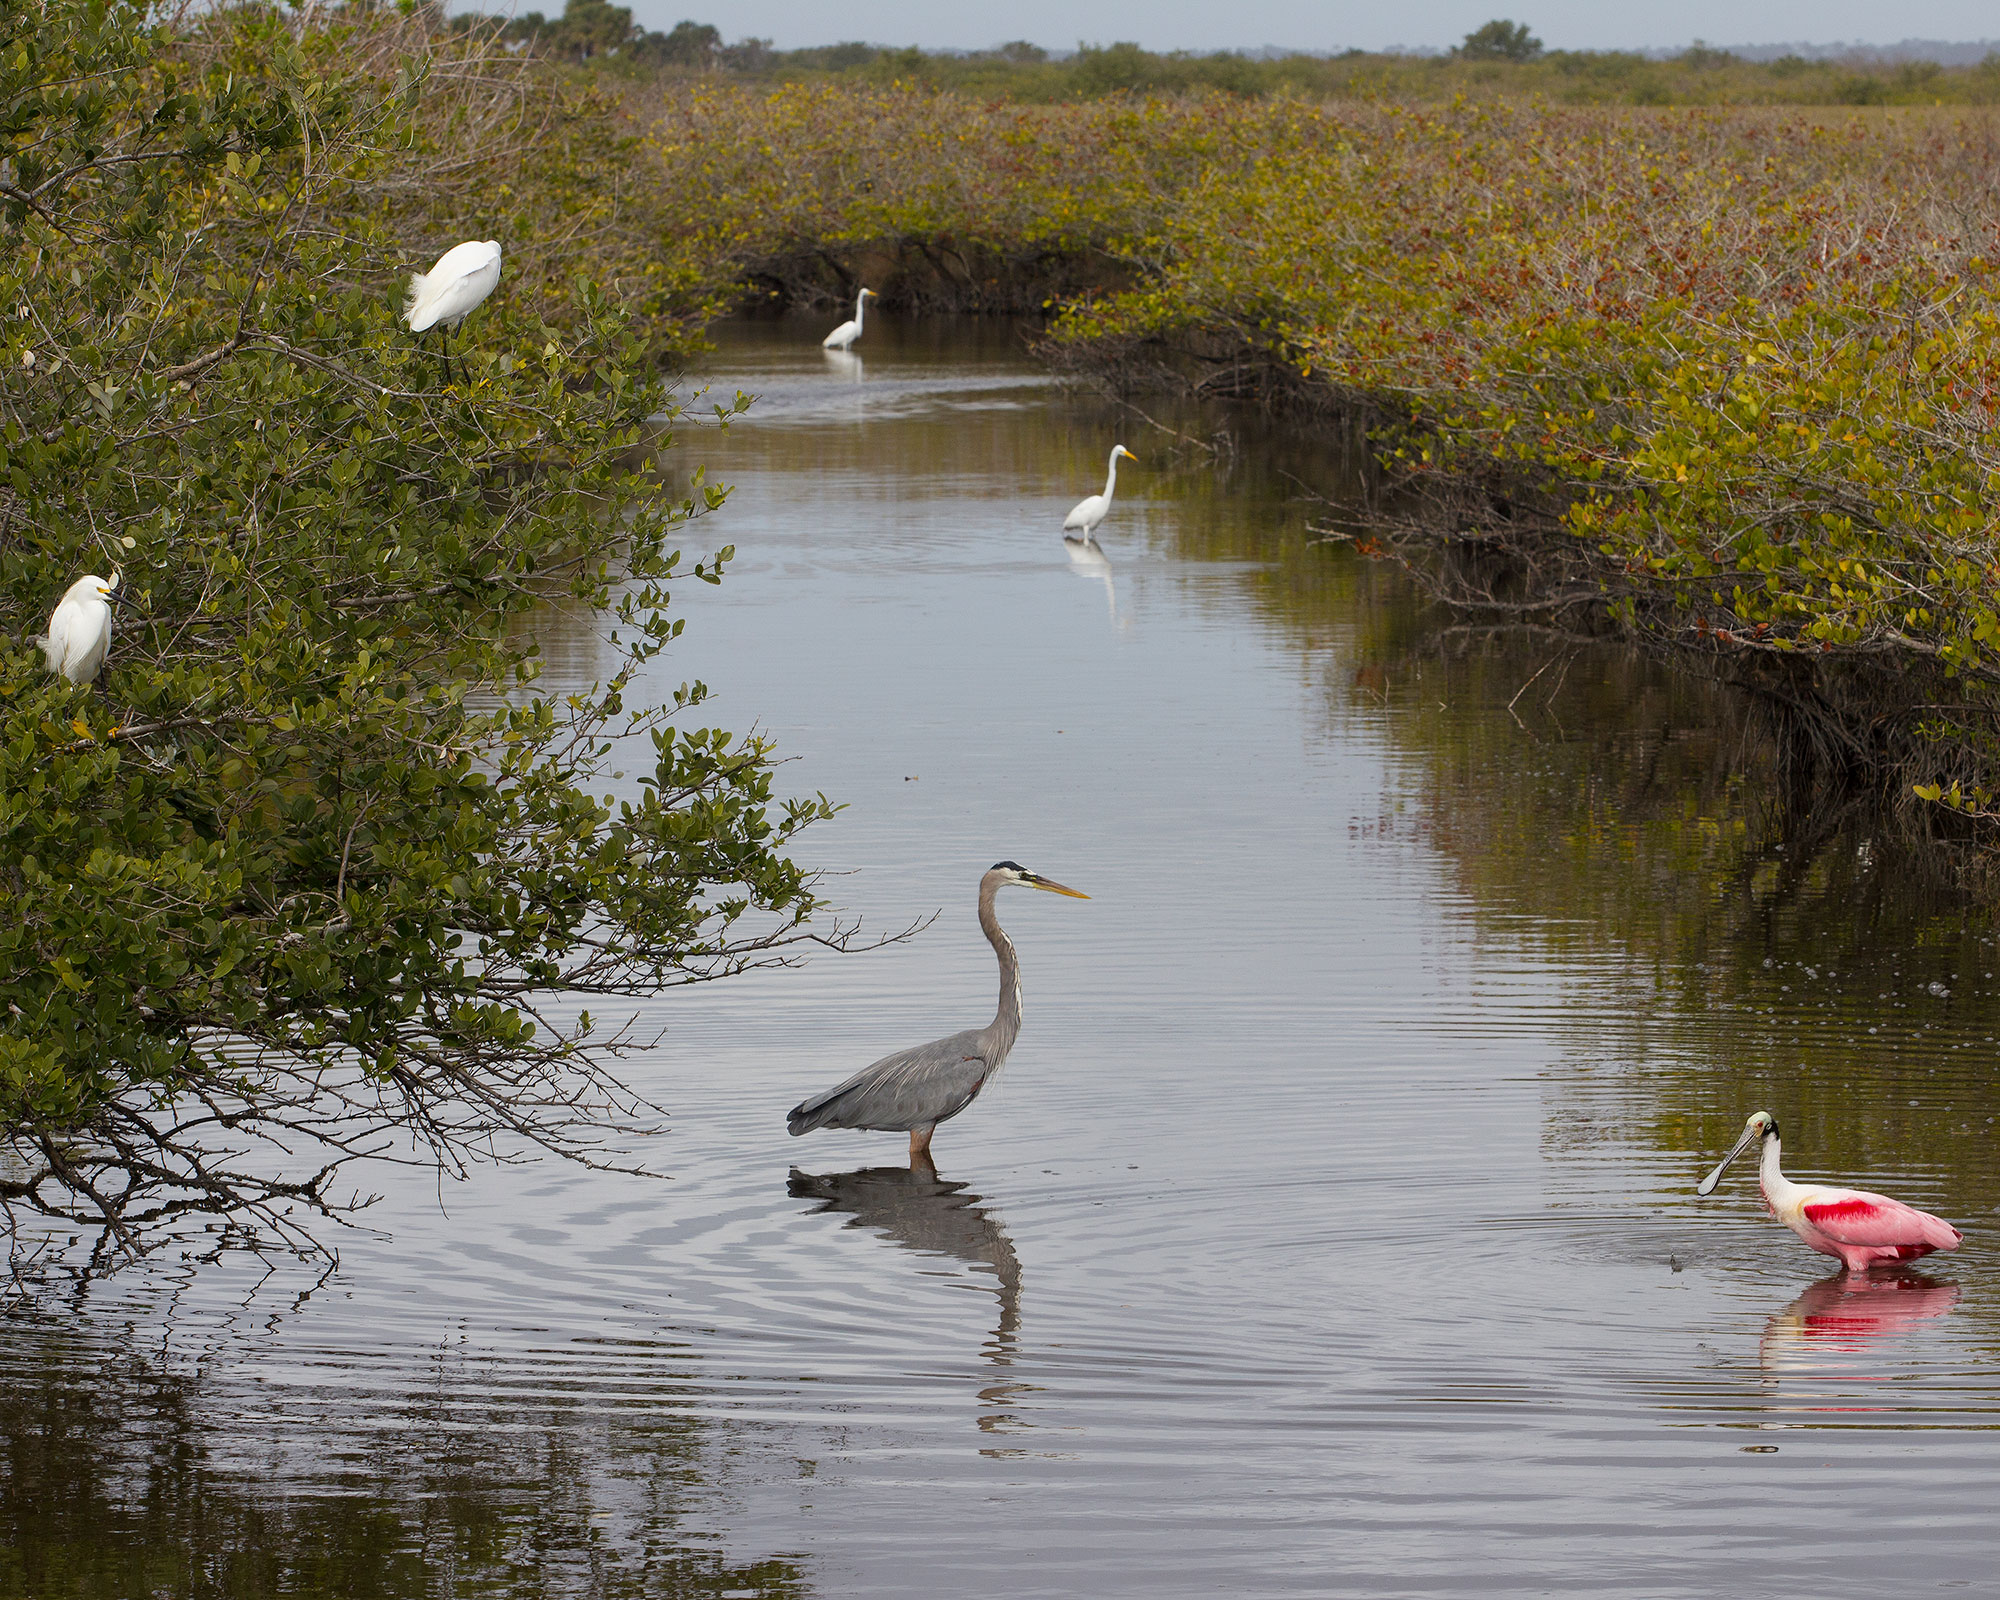 Great Blue Heron, Roseate Spoonbill, and Others